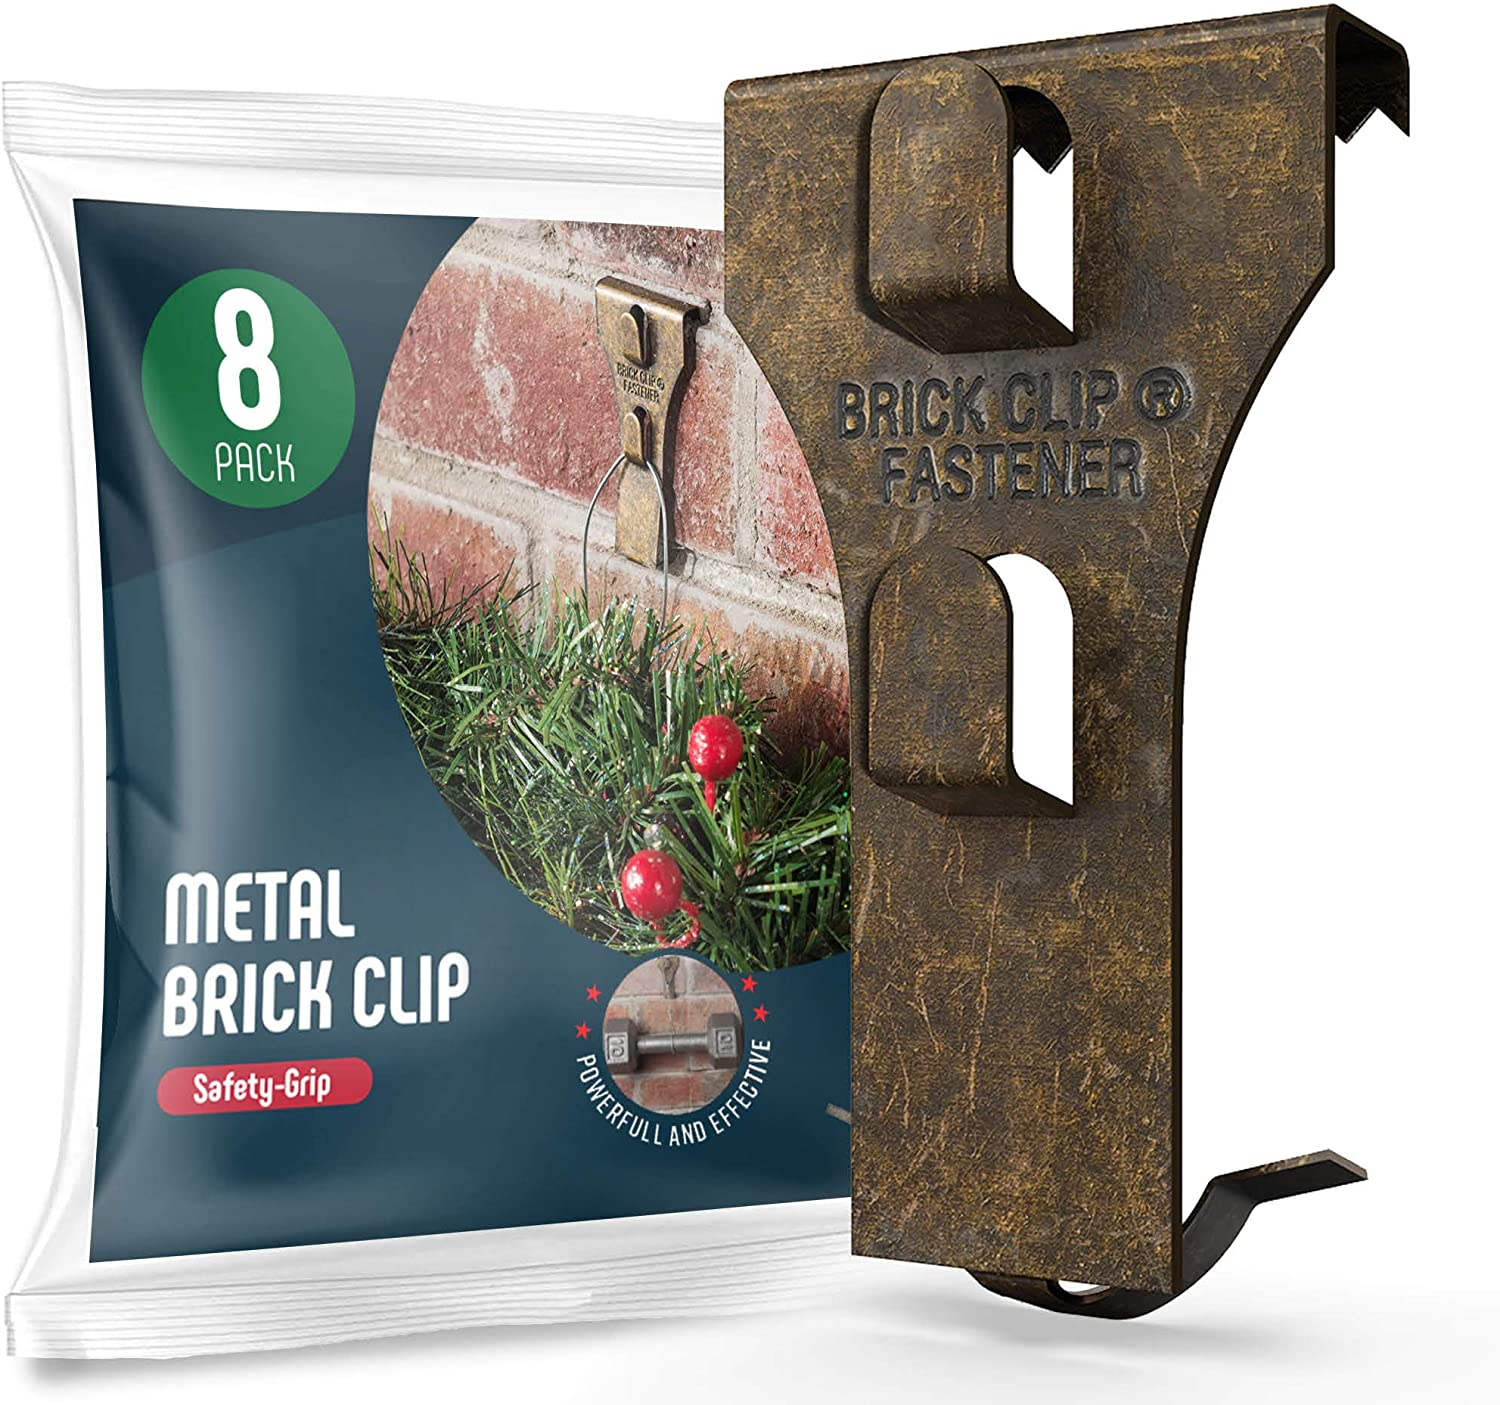 Brick Clips Hanger [Set of 8] Metal Brick Clip for Hanging Outdoors, Hanging Wreaths, Garlands, Lights, Wall Pictures & All Décor Hanging - Fits Brick 2.3 / 2.6 Inch - Holds Up to 25 Pounds - USA Made